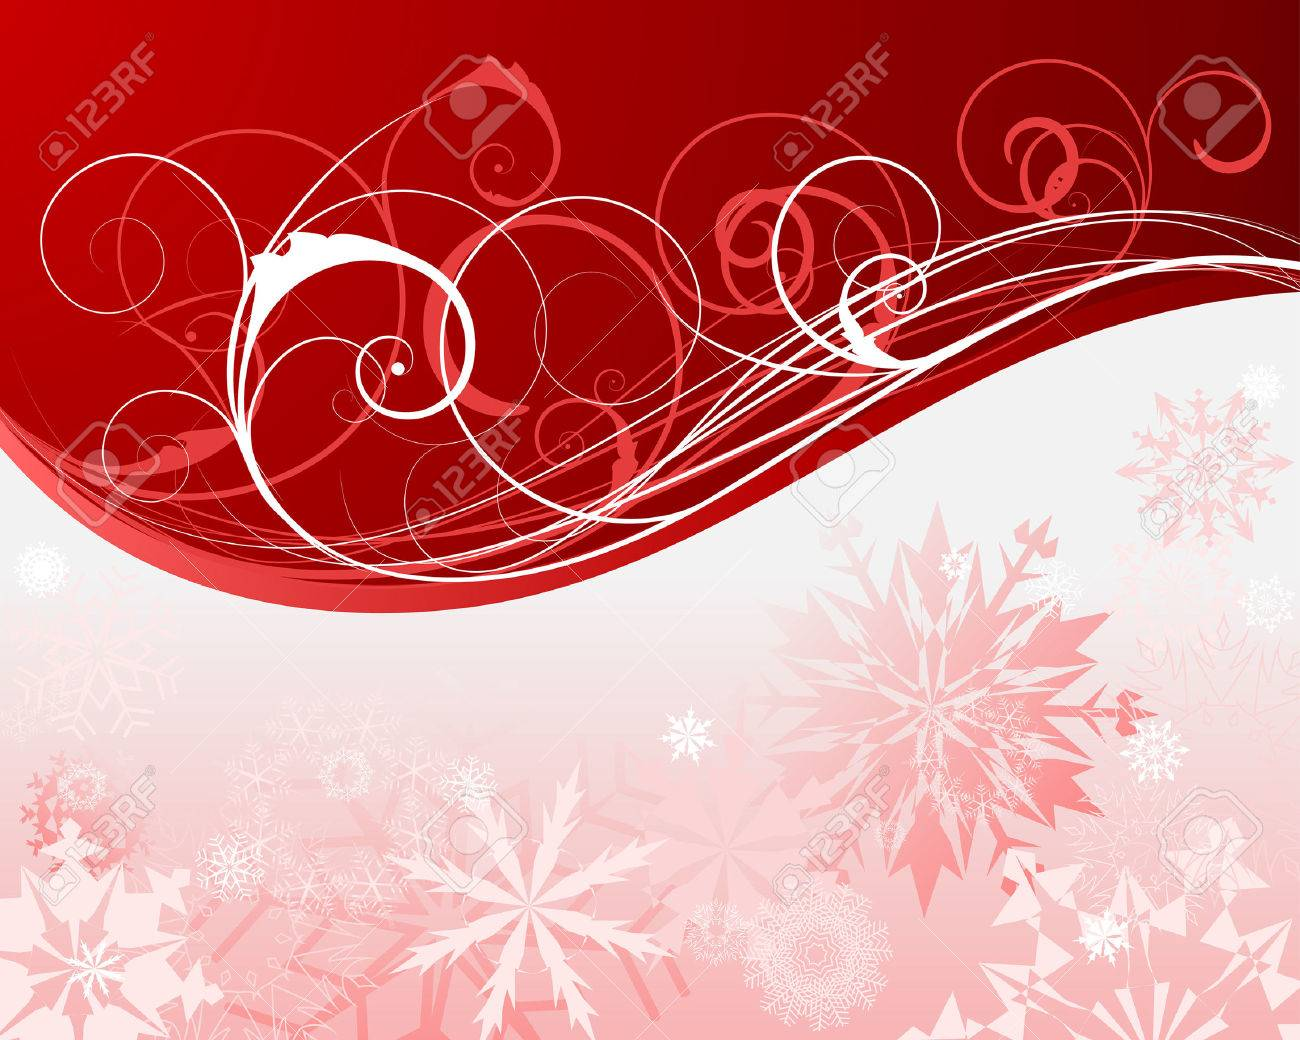 Beautiful vector christmas new year background for design use - Beautiful Vector Christmas New Year Background For Design Use Stock Vector 5804632